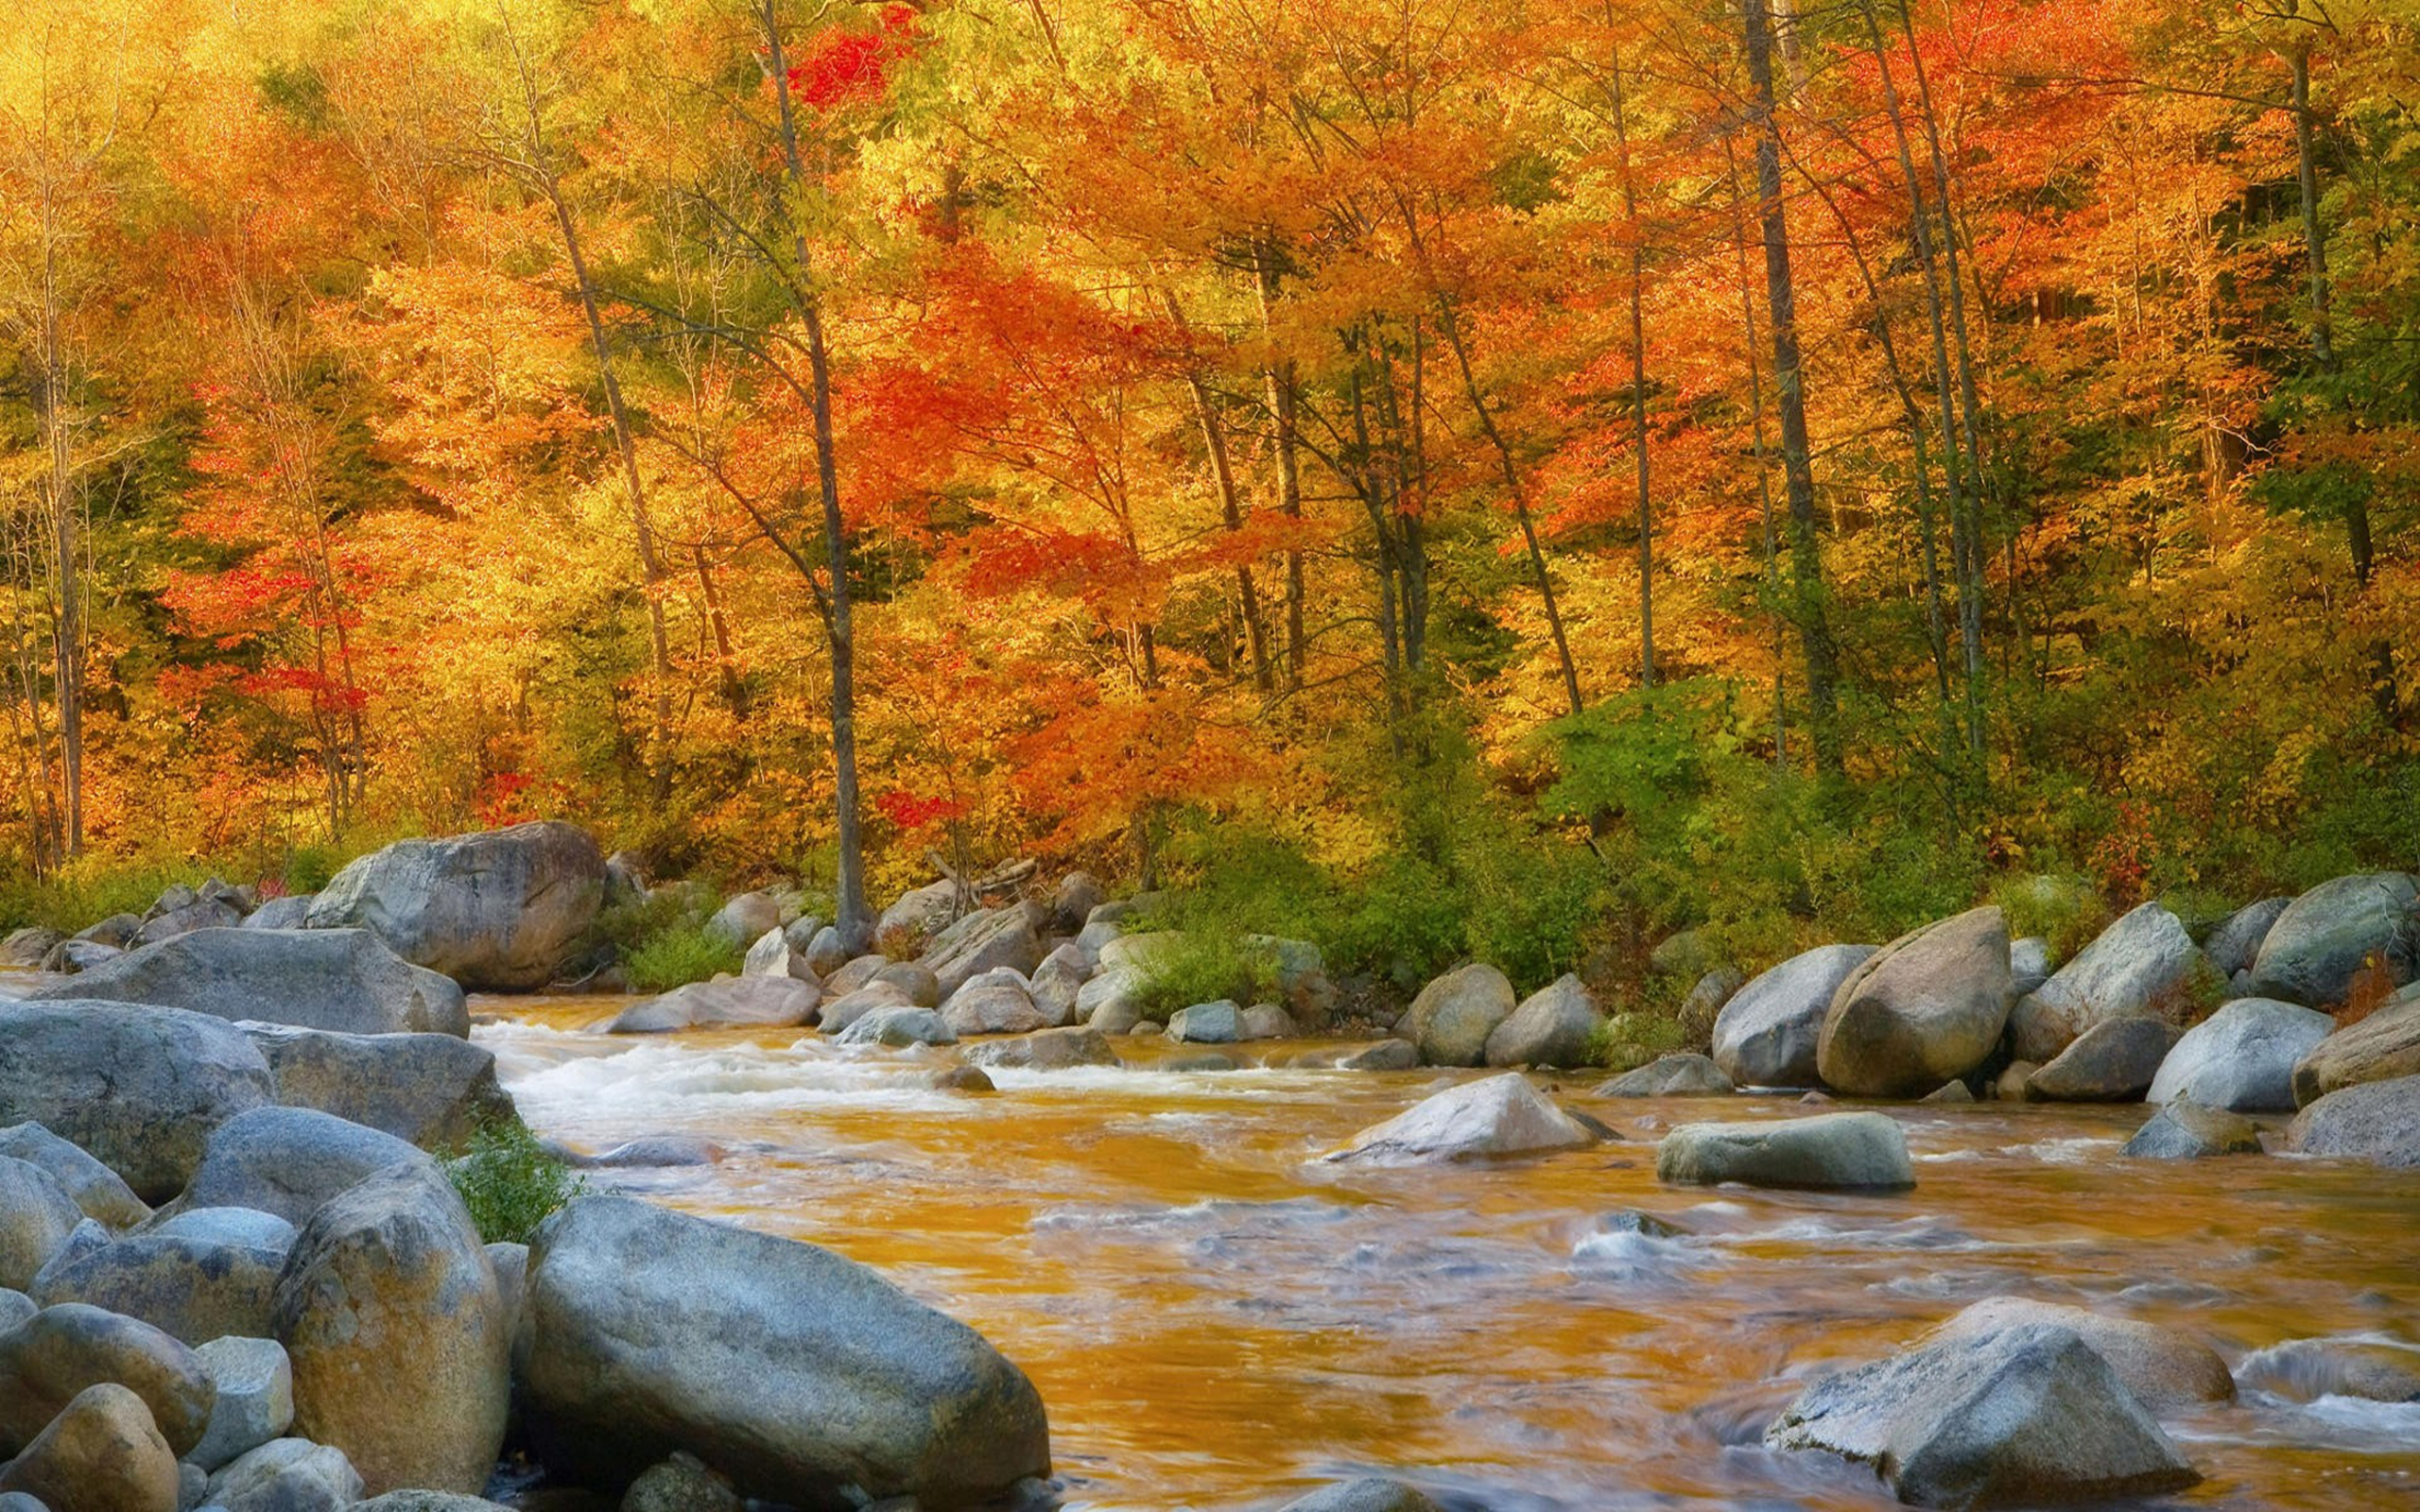 Autumn River HD Wallpaper   Page 5 of 5   WallpaperAsk 2560x1600